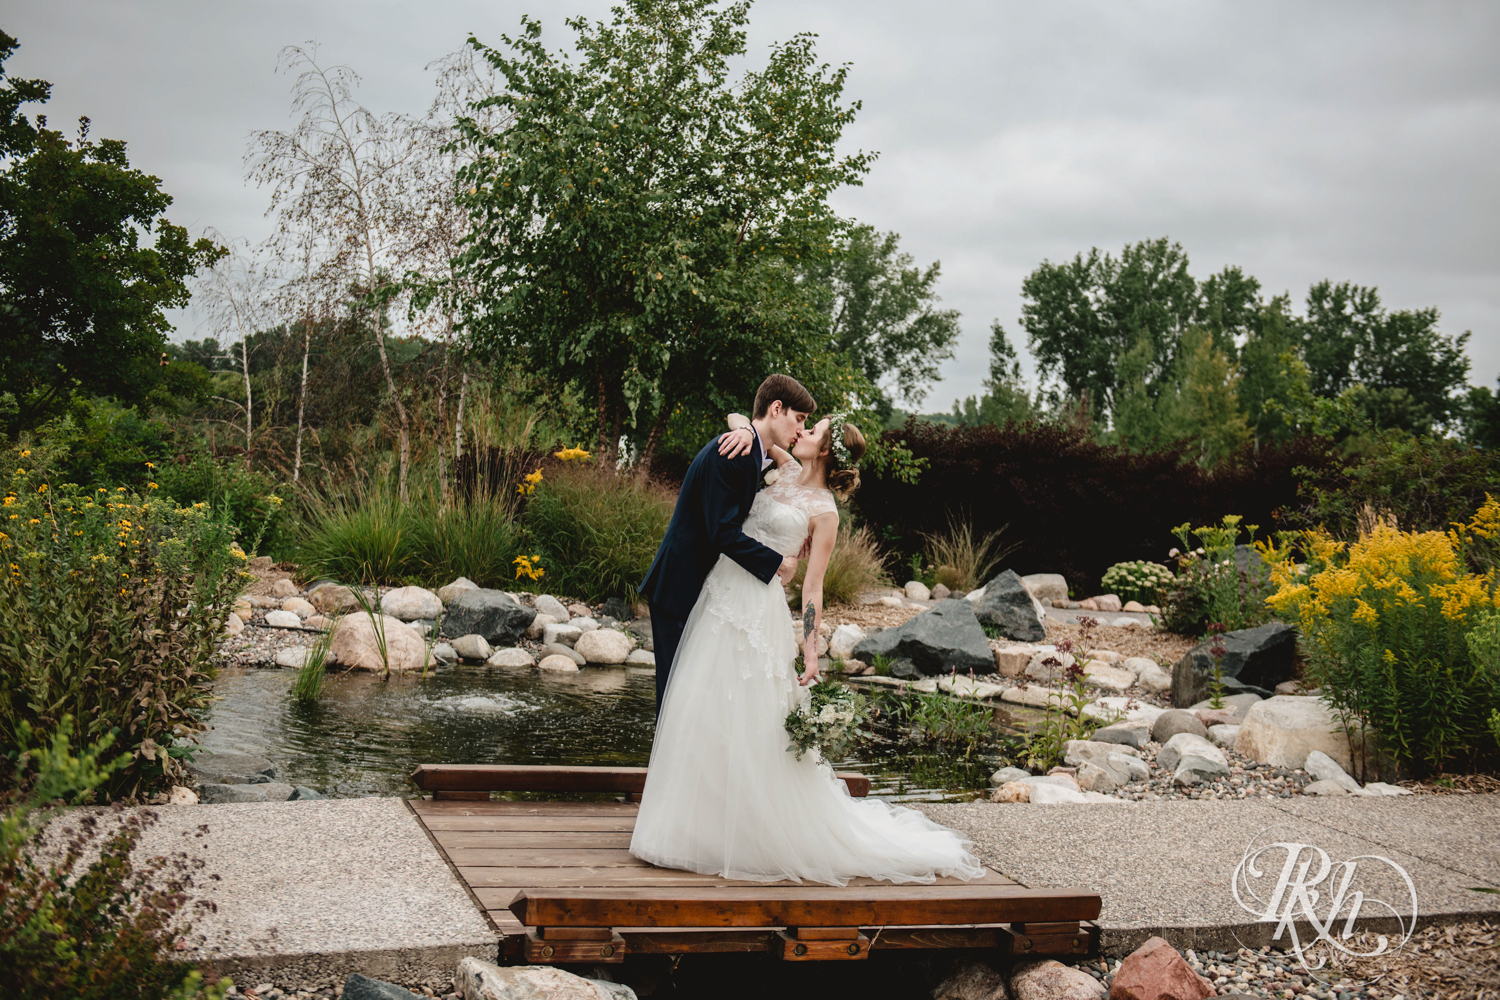 Minnesota Wedding Photography - RKH Images - Best of 2018 (27 of 51).jpg